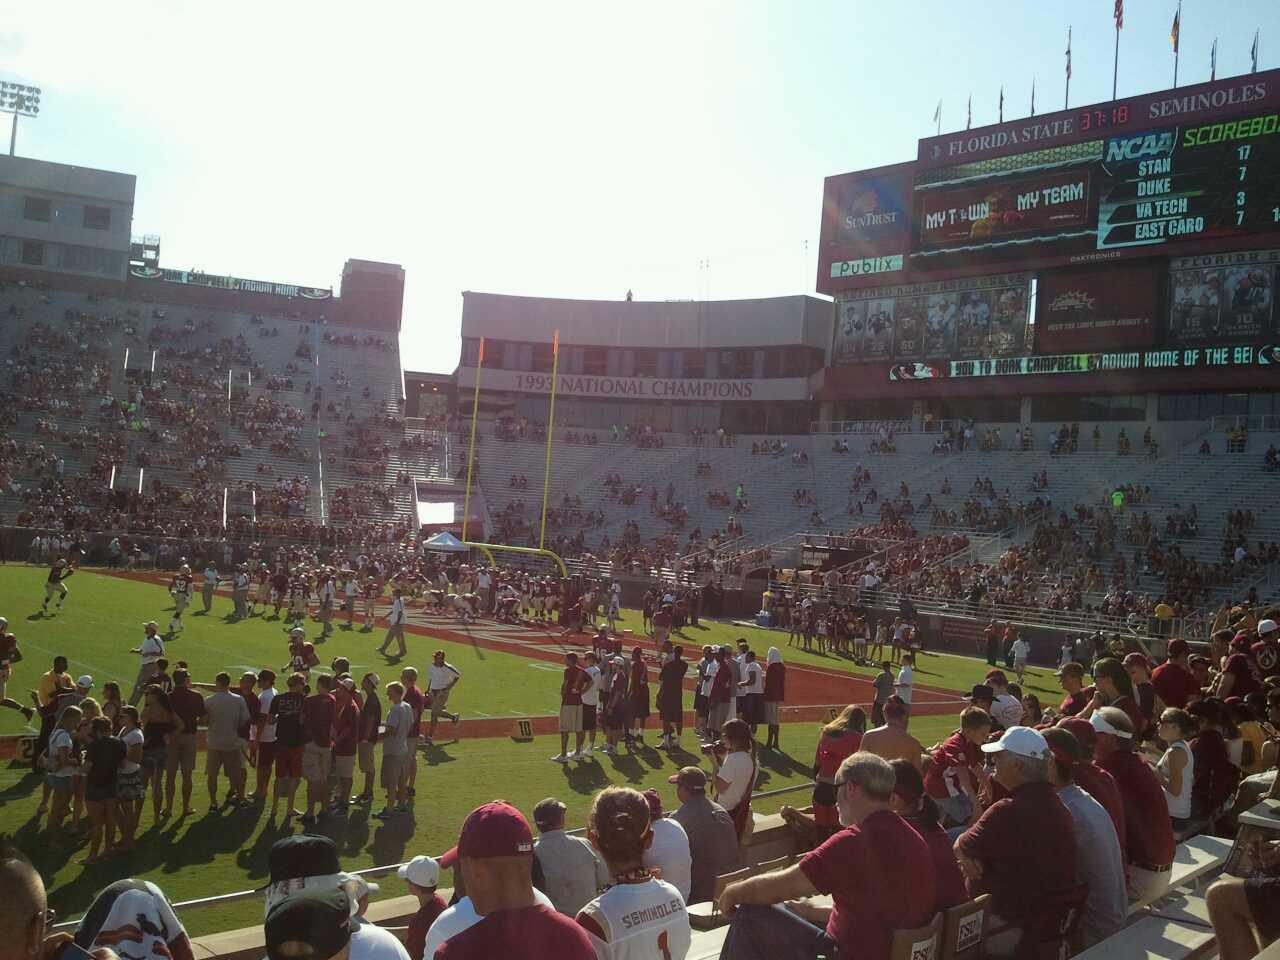 Bobby Bowden Field at Doak Campbell Stadium Section 9 Rangée 10 Siège 19